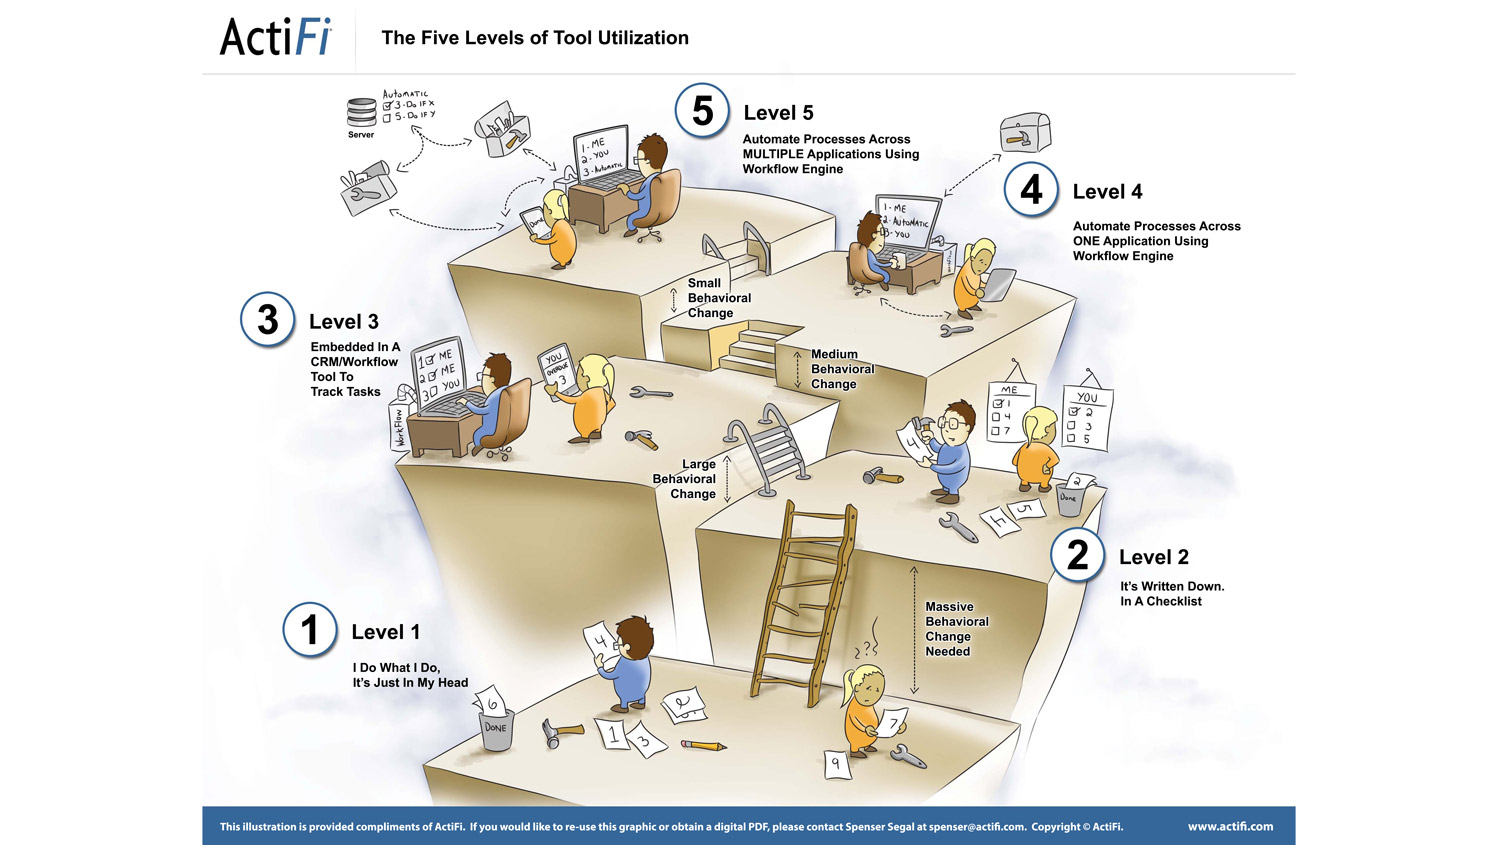 ActiFi's Five Levels of Utilization (click to enlarge)